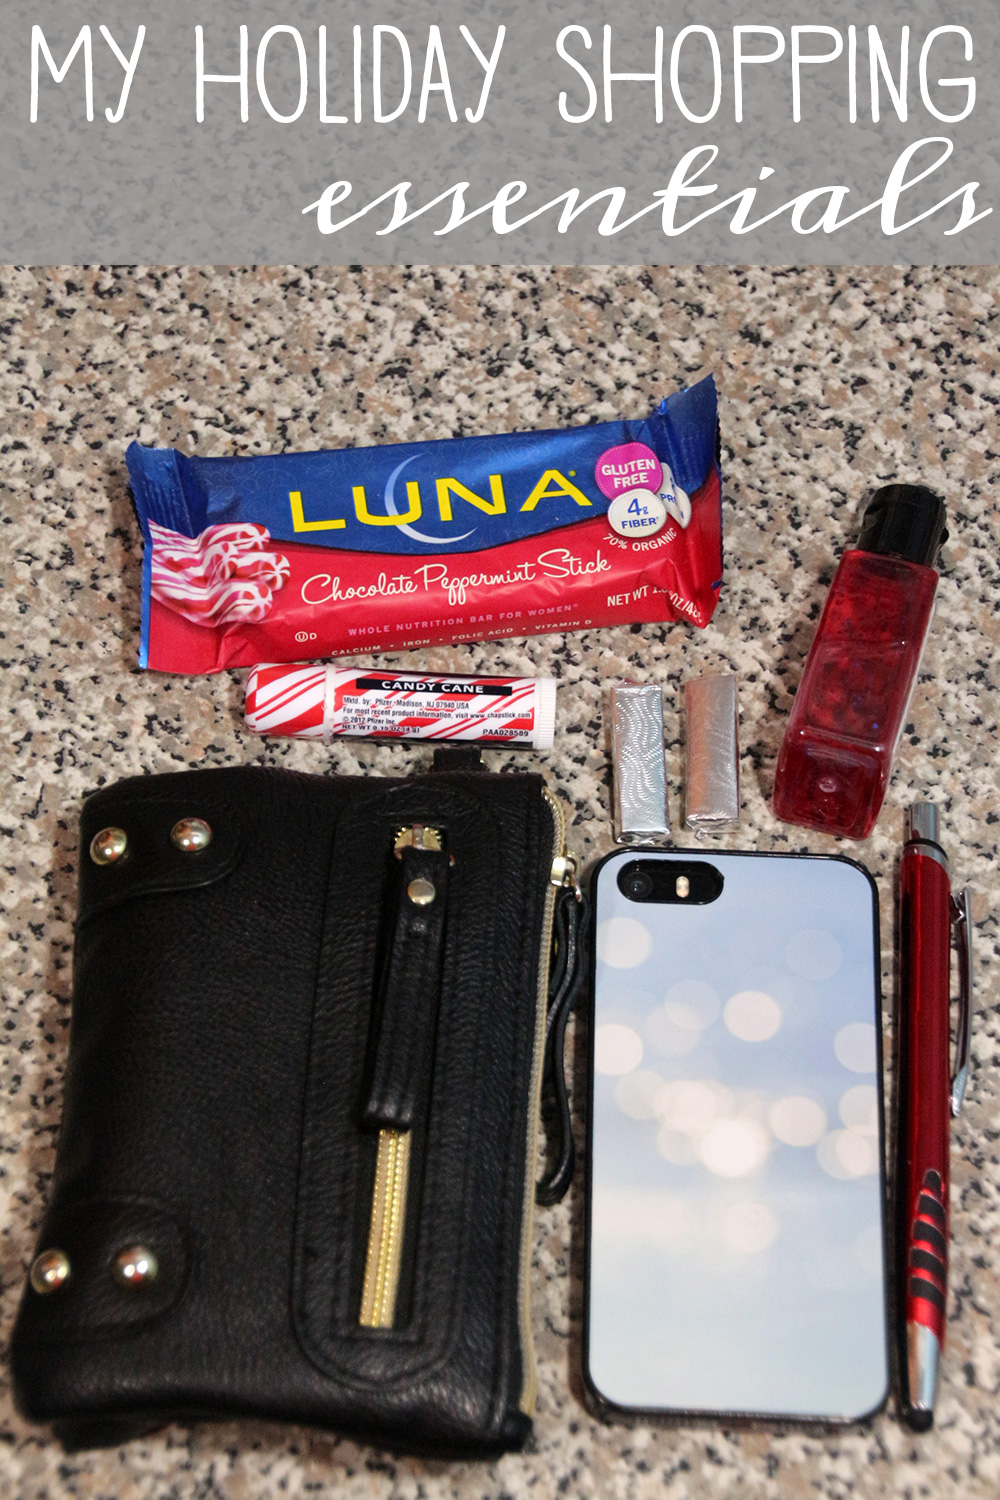 Holiday-Shopping-Made-Easy-with-LUNA-Bar-011